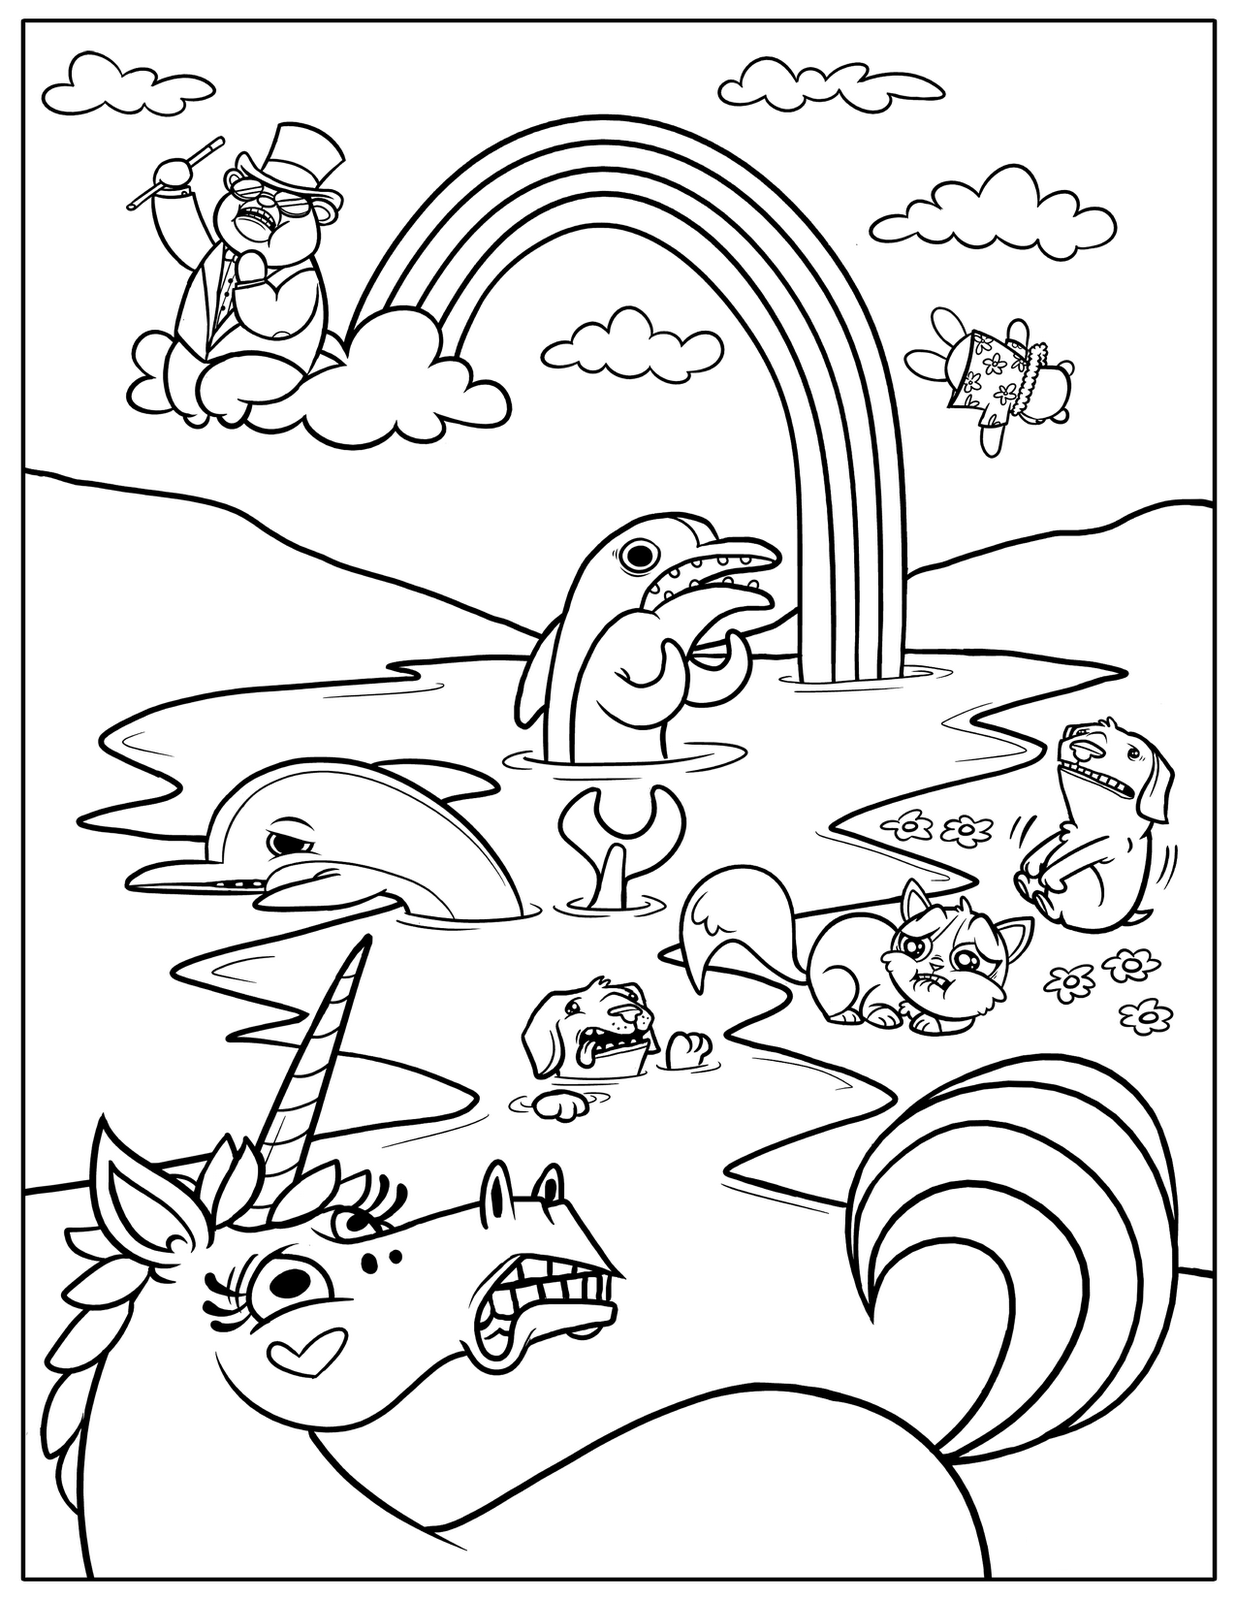 Free printable rainbow coloring pages for kids for Coloring pages toddler